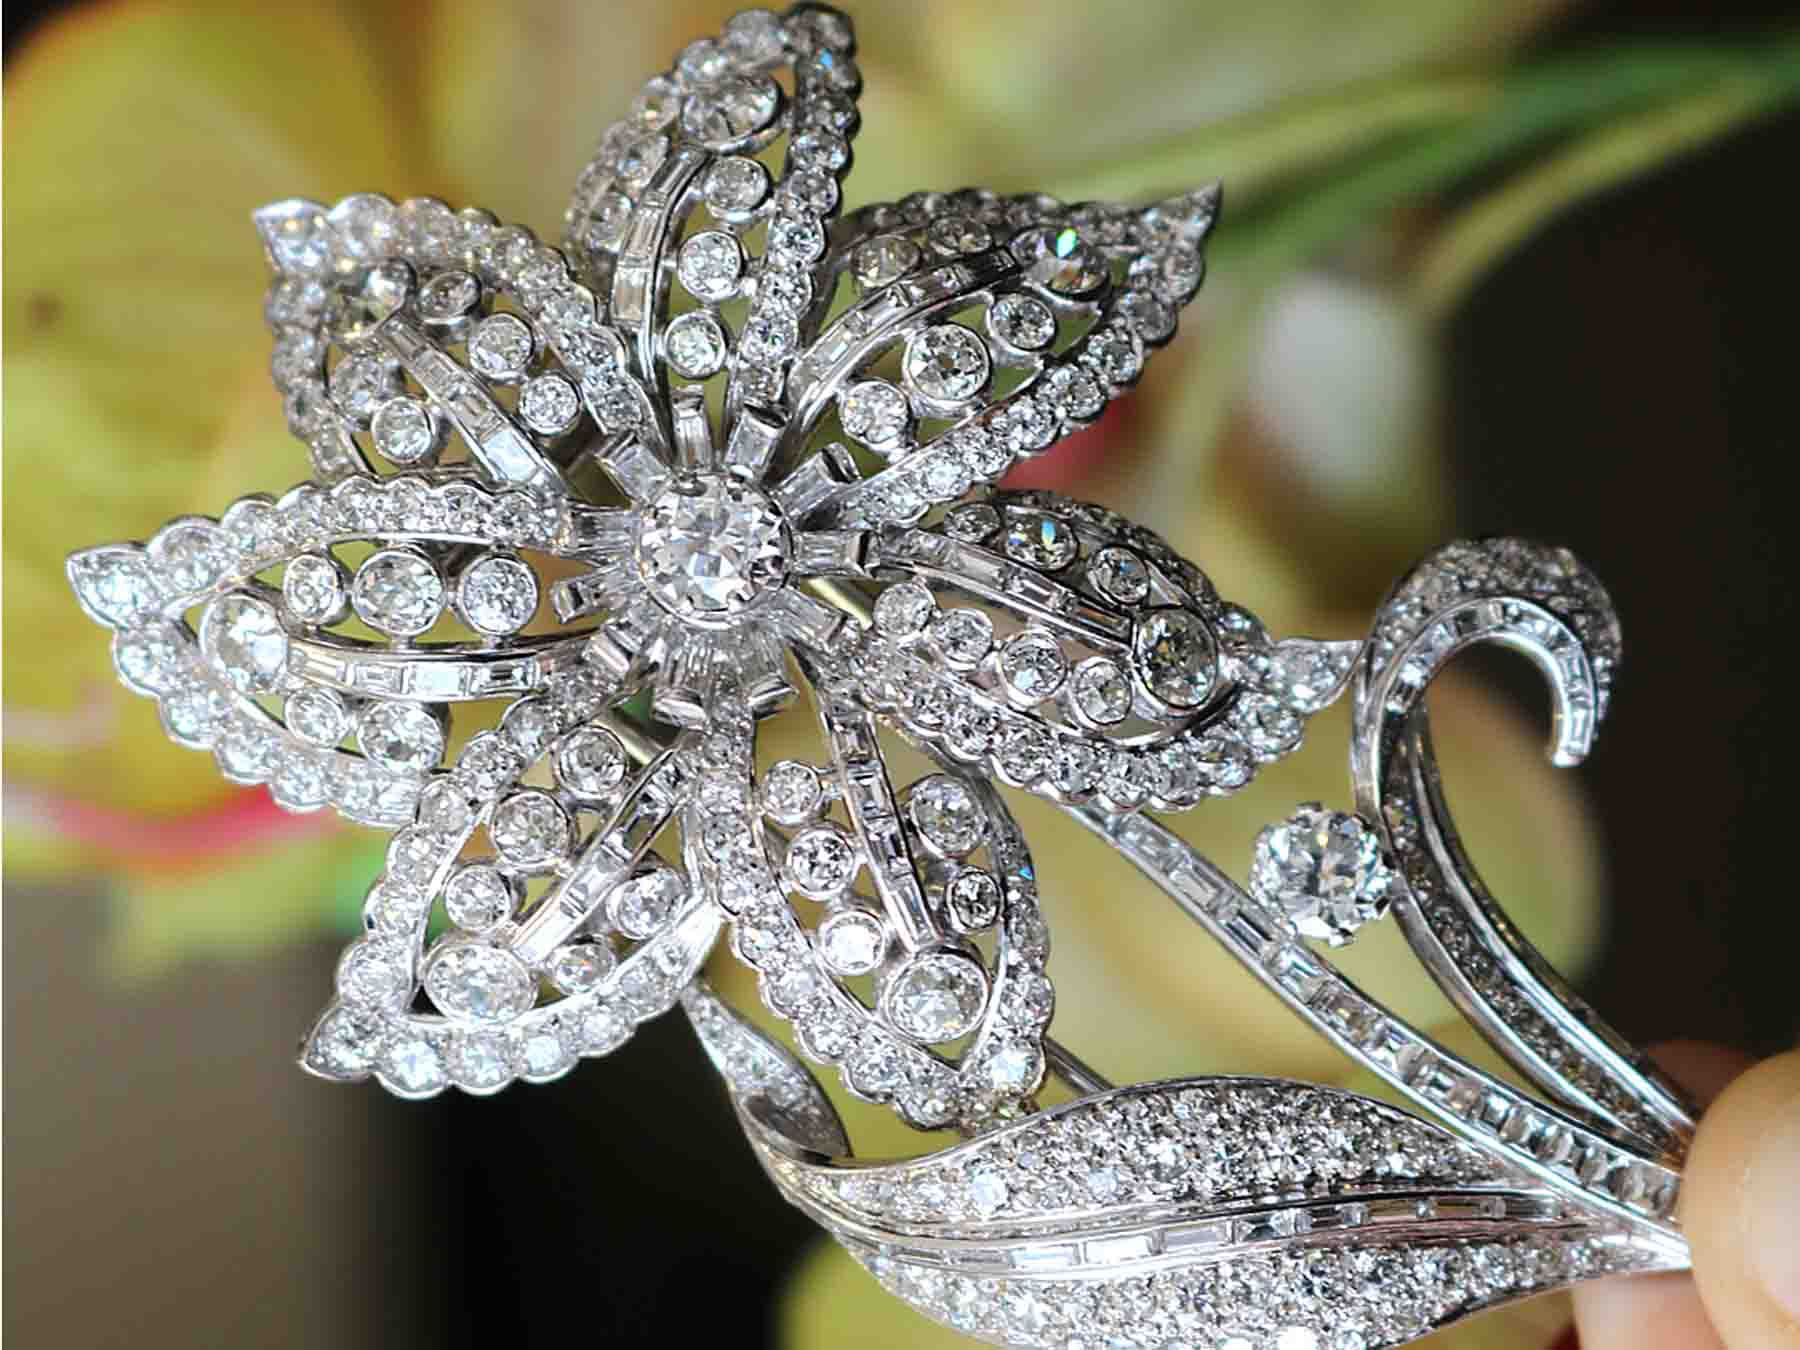 Jewellery for Christmas Day